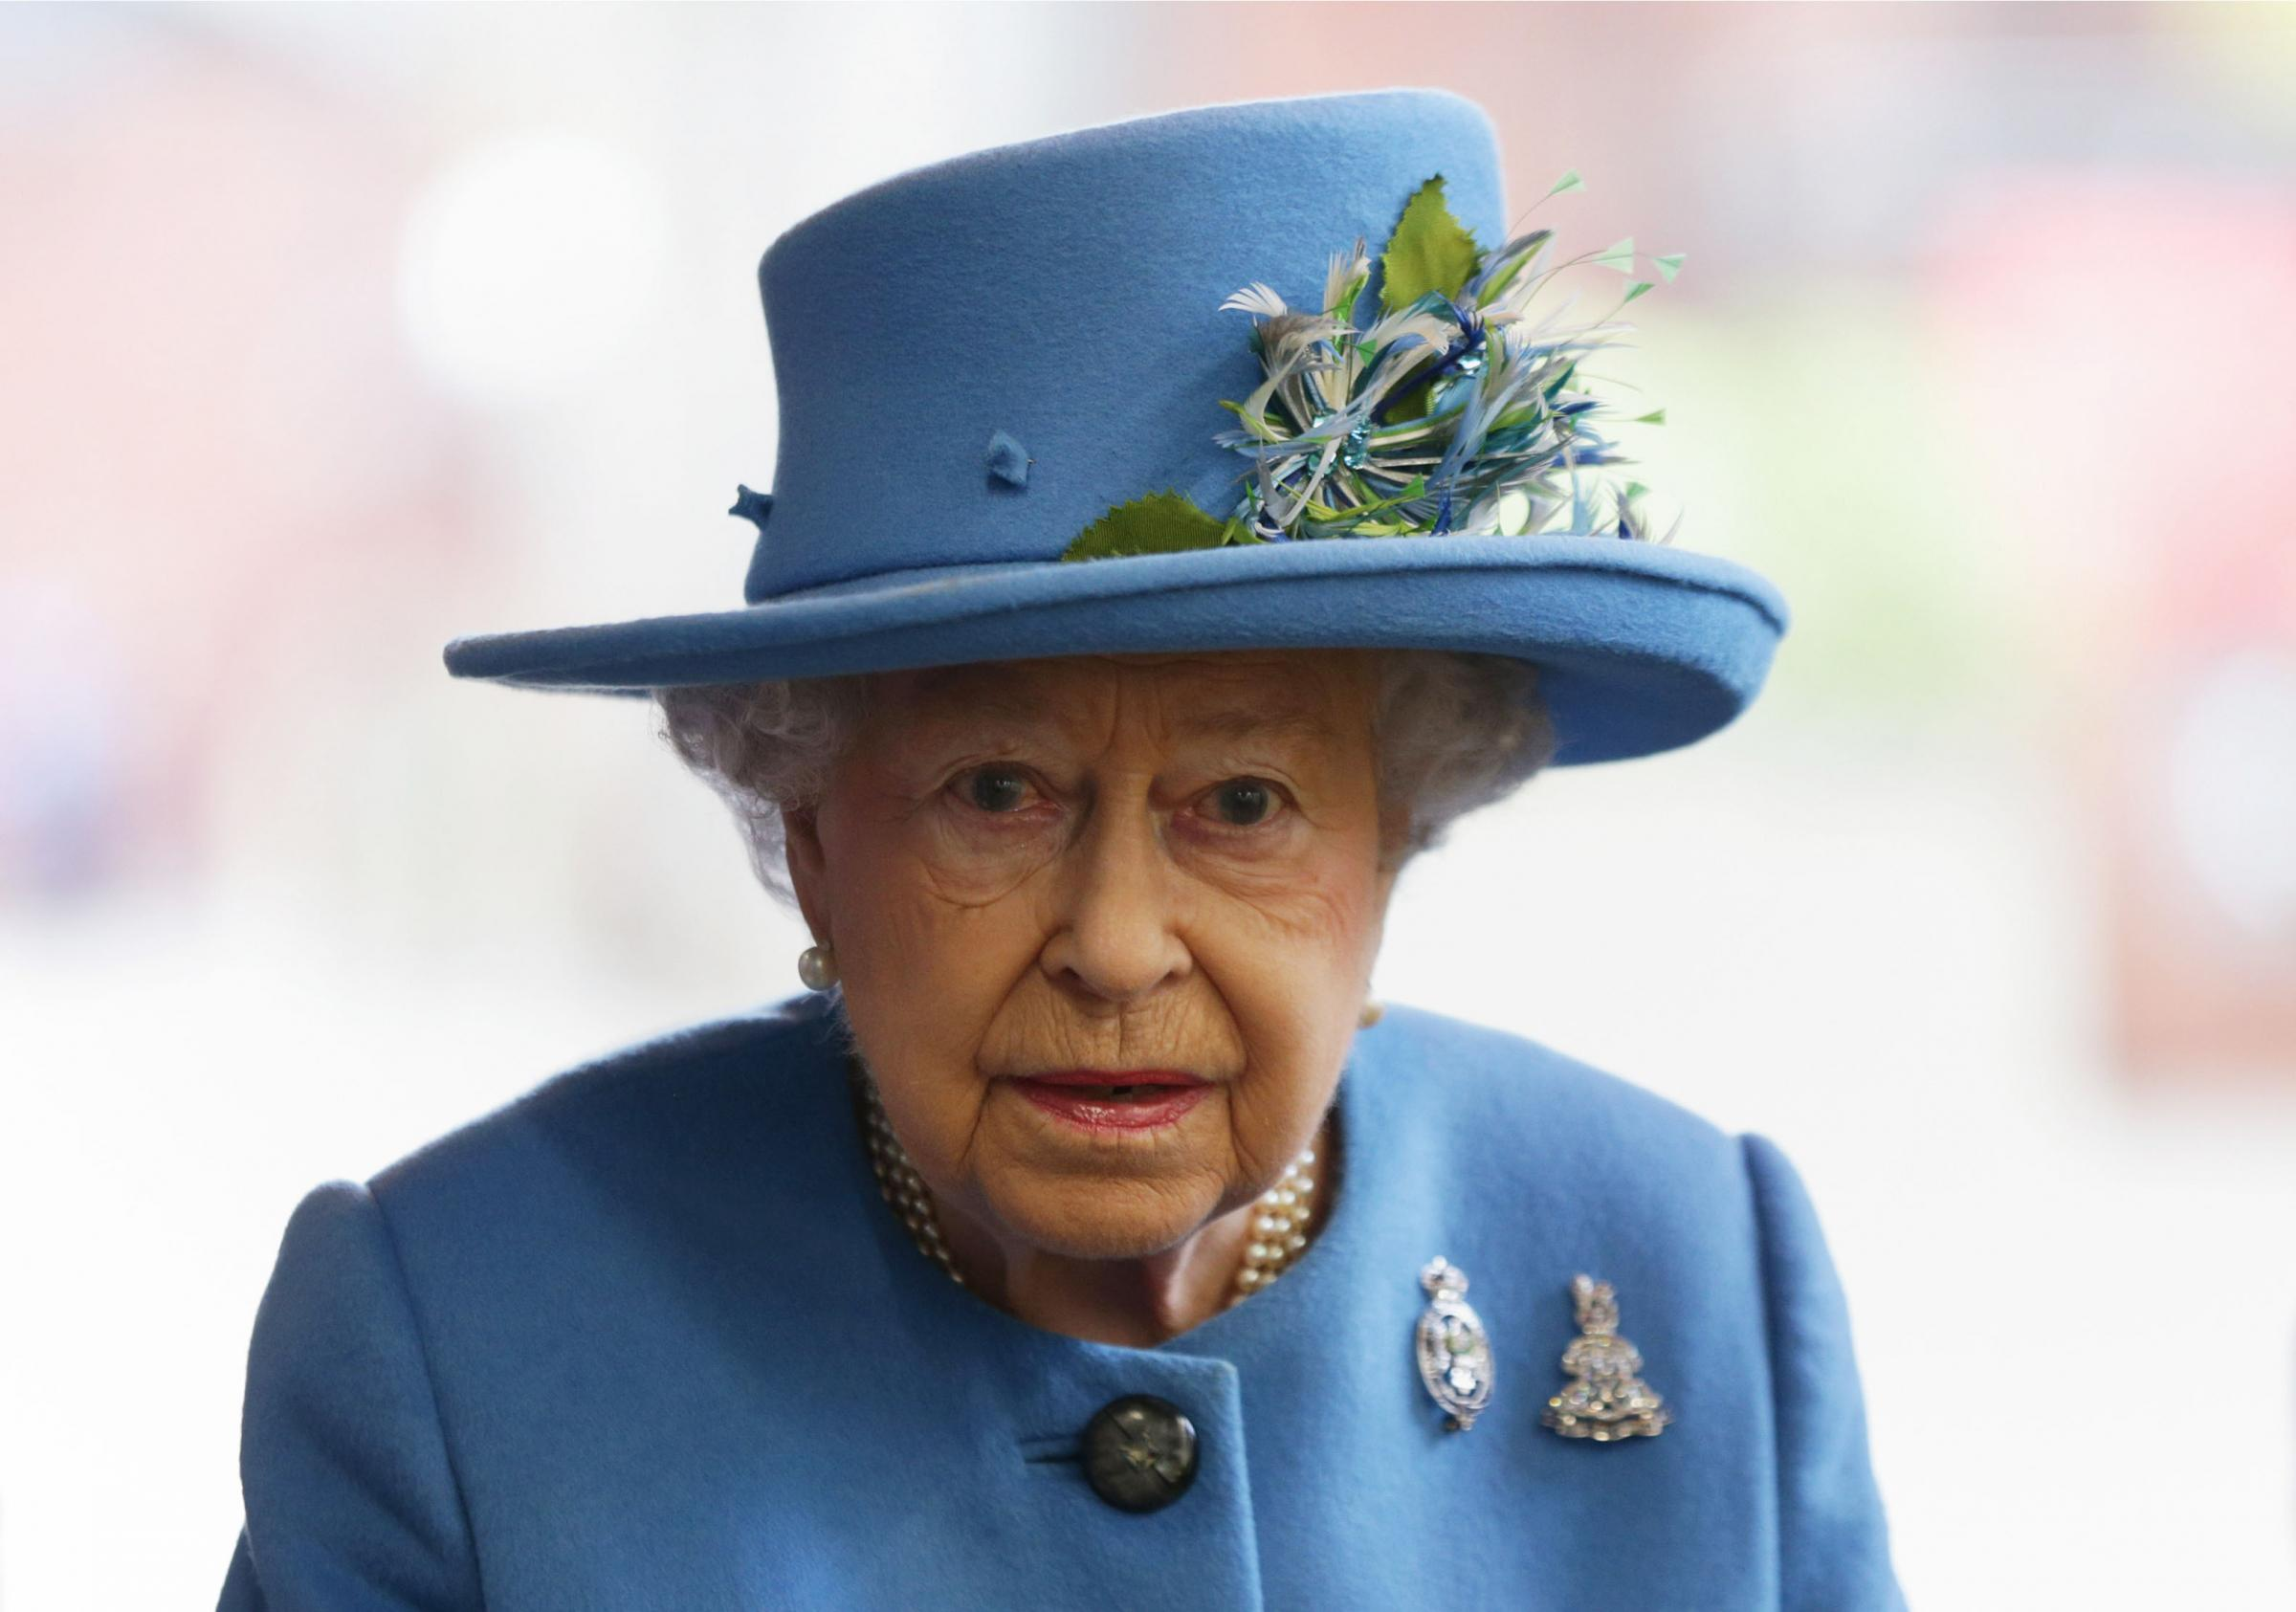 TAXES: It does not seem right for the Queen's finances to hide behind a cloak of secrecy